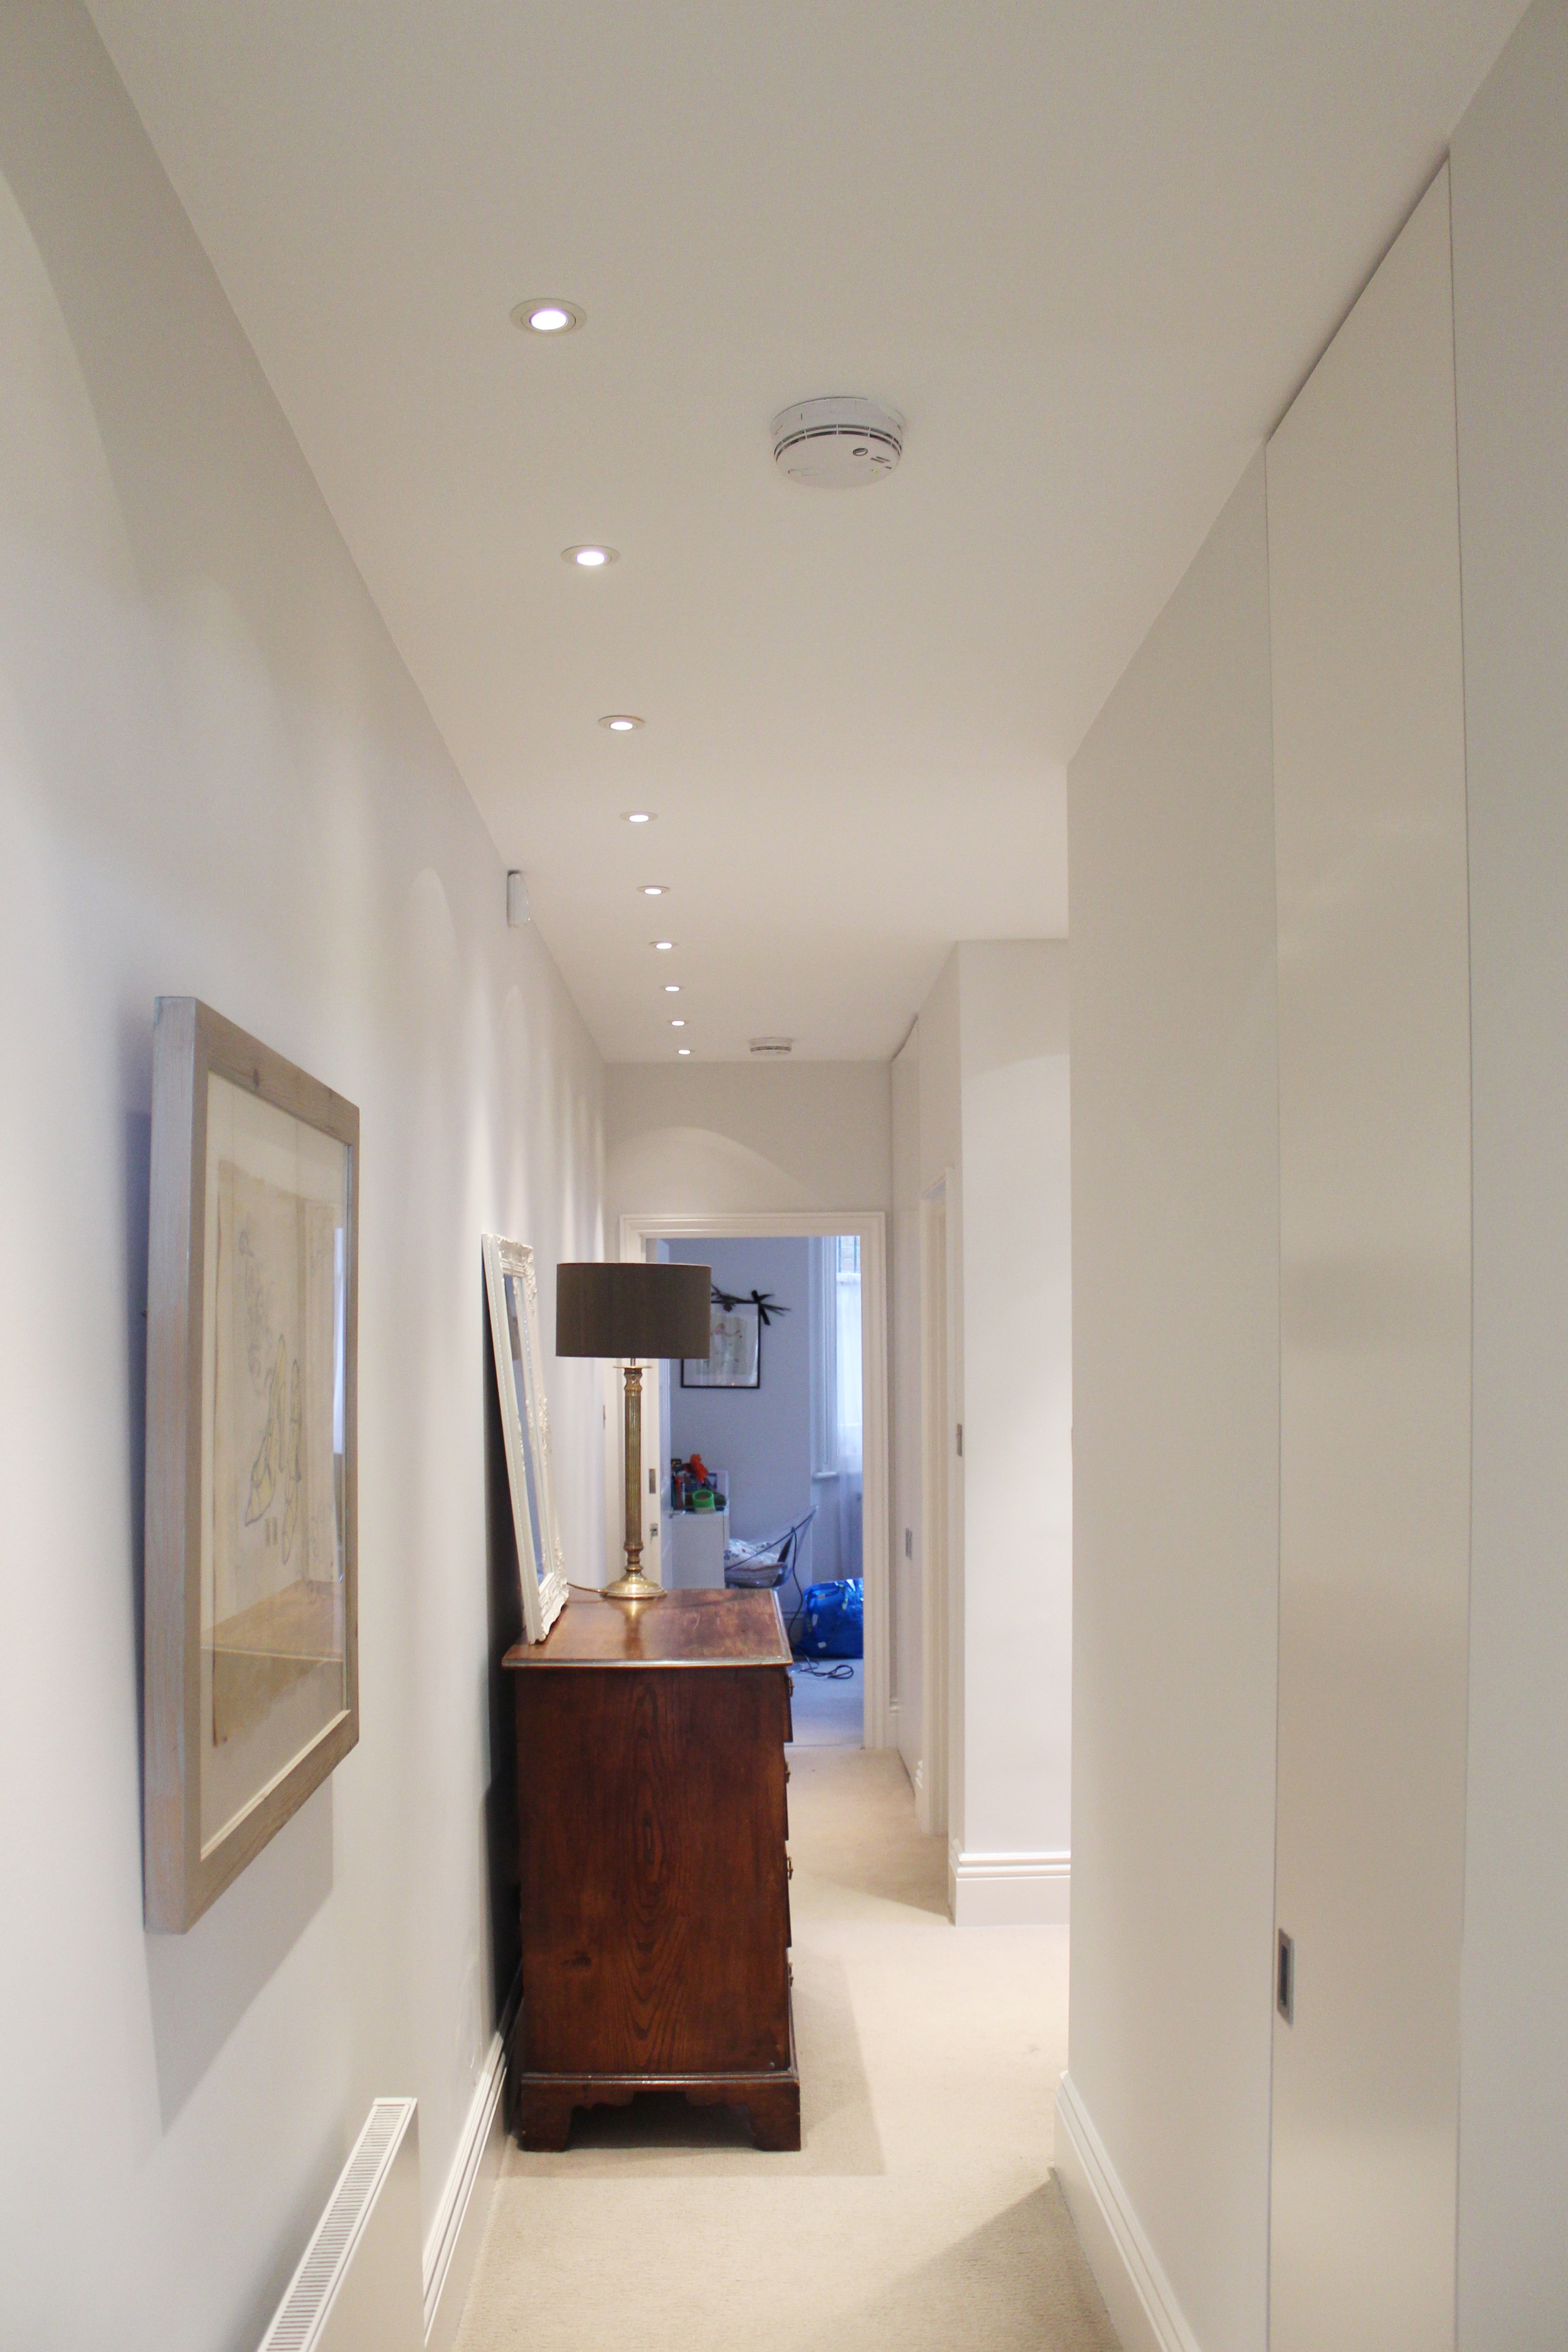 #NHRenovations #Painter #Decorator #London #PrimroseHill #Hallway #Farrowandball #Farrow #Blackened #Basement #PrimroseHill #Primrose